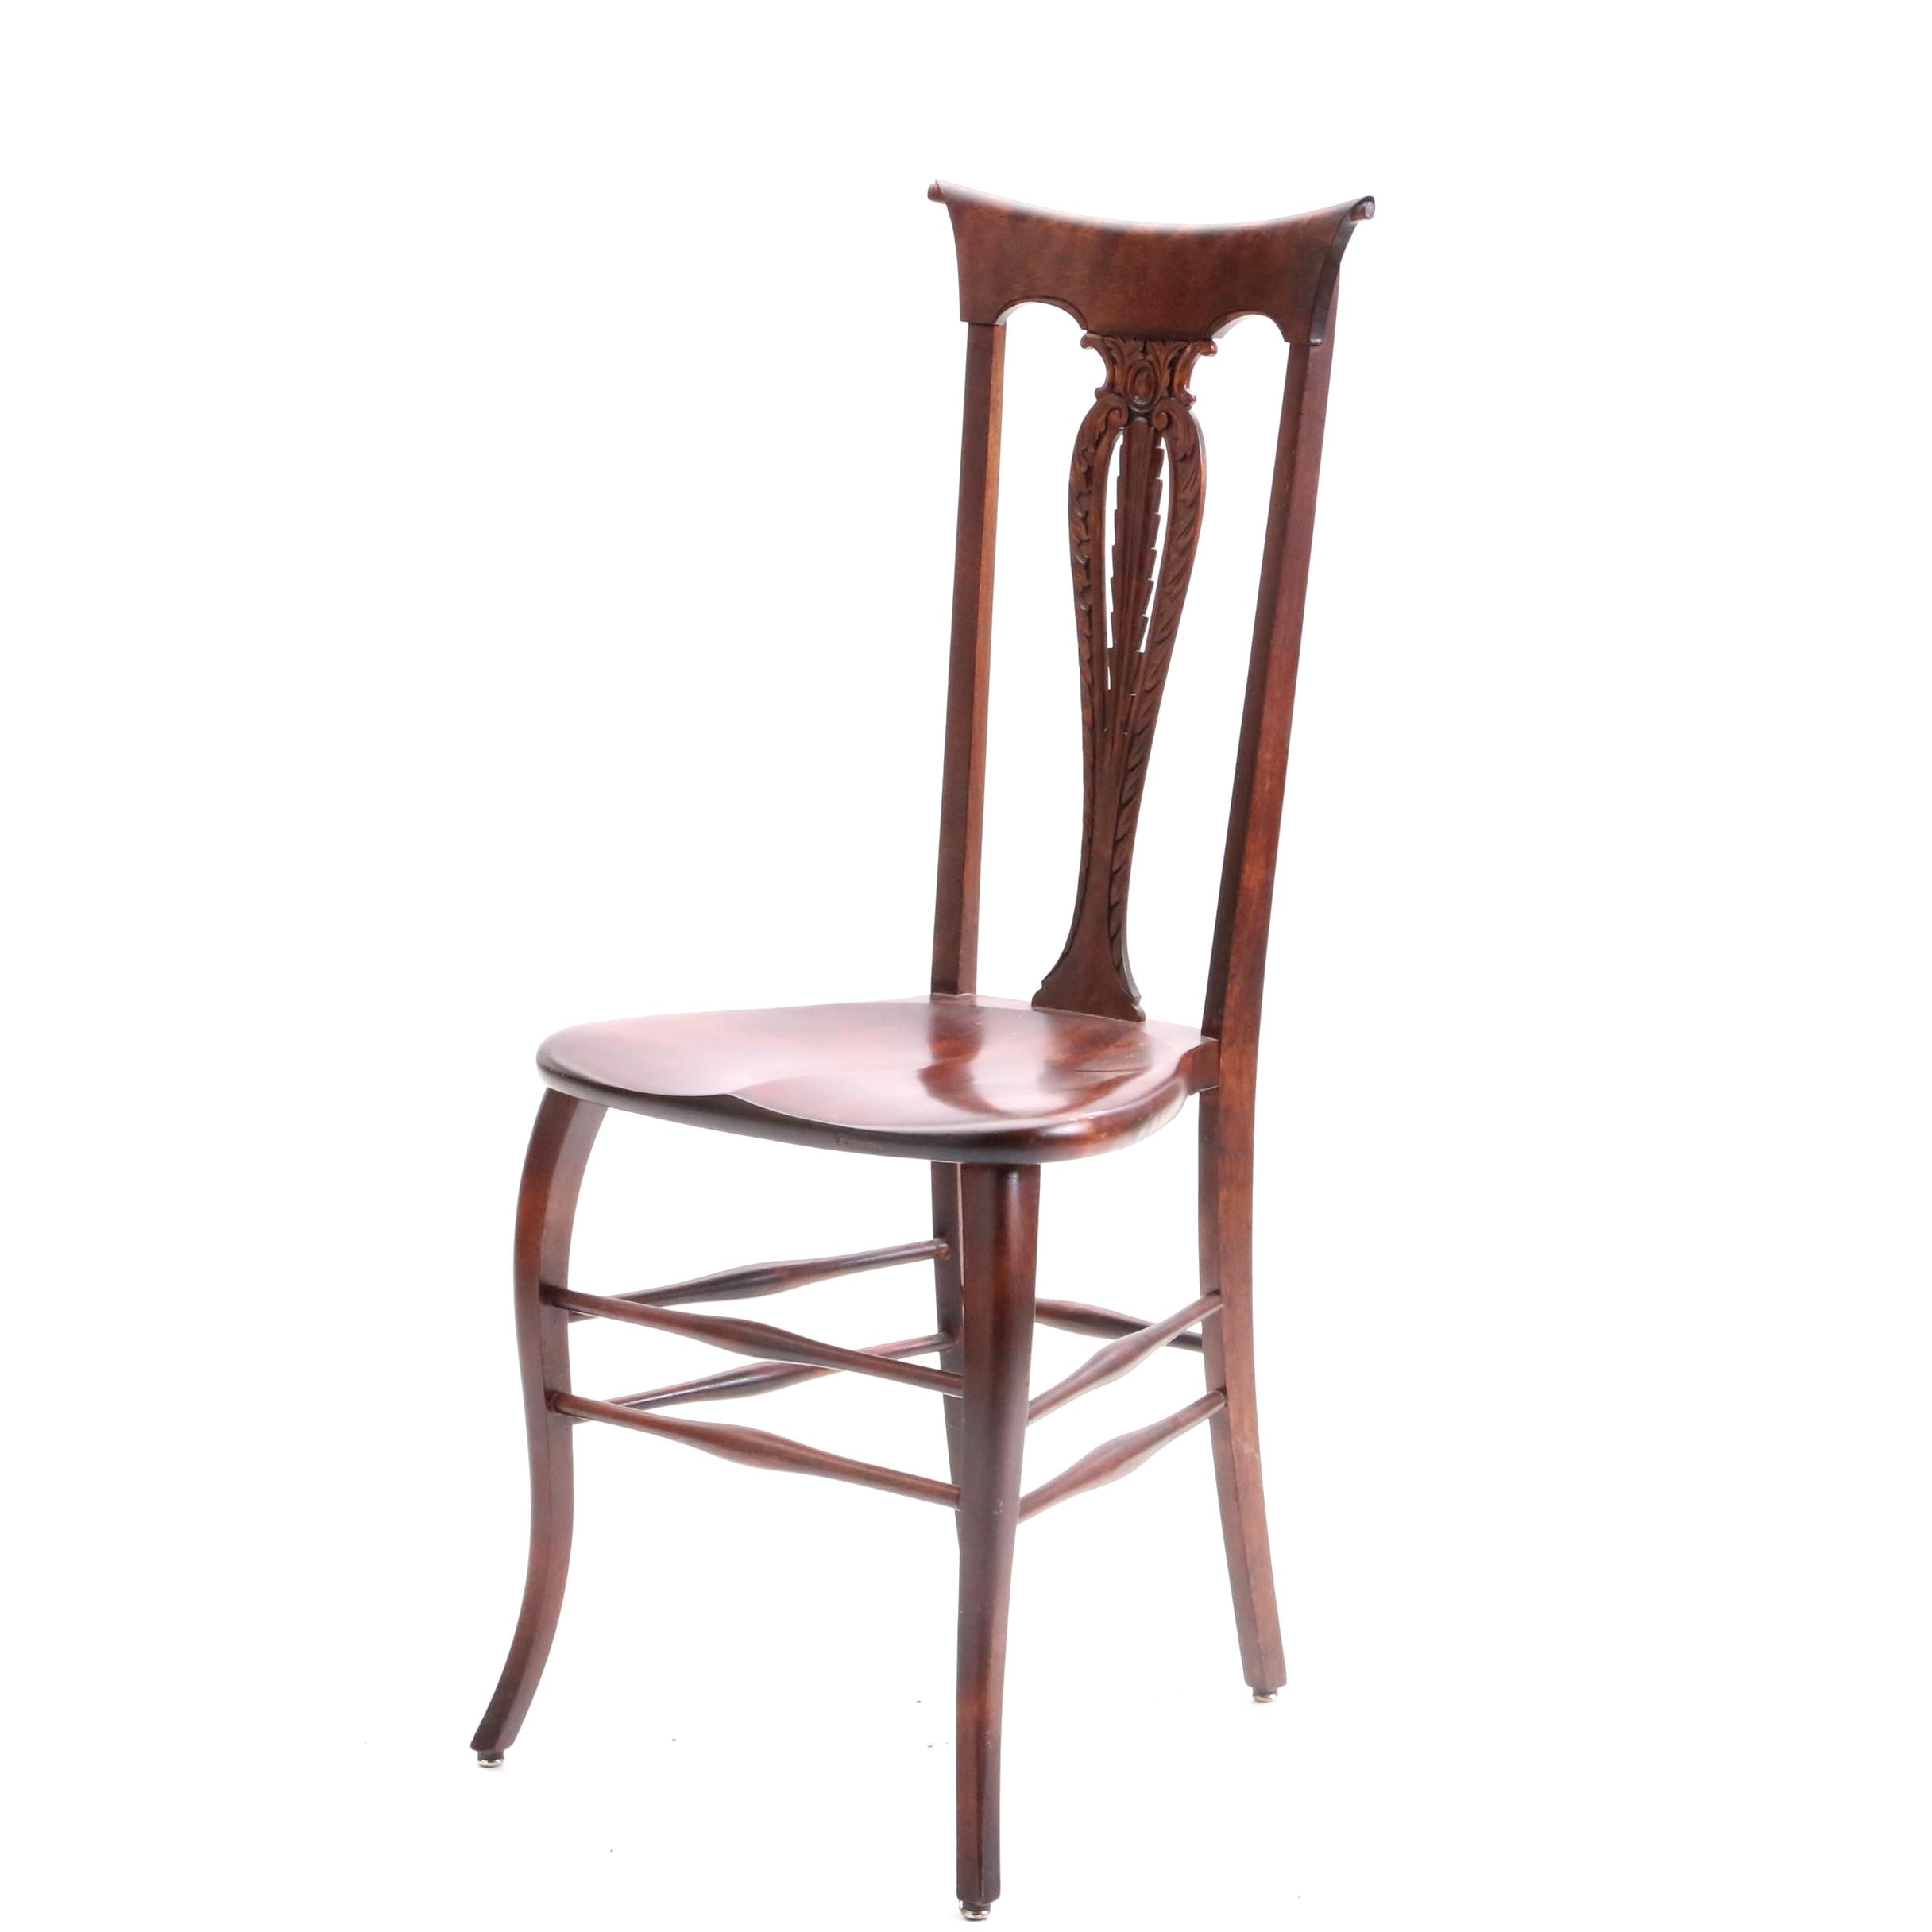 Colonial Revival Style Birch Side Chair, Mid 20th Century